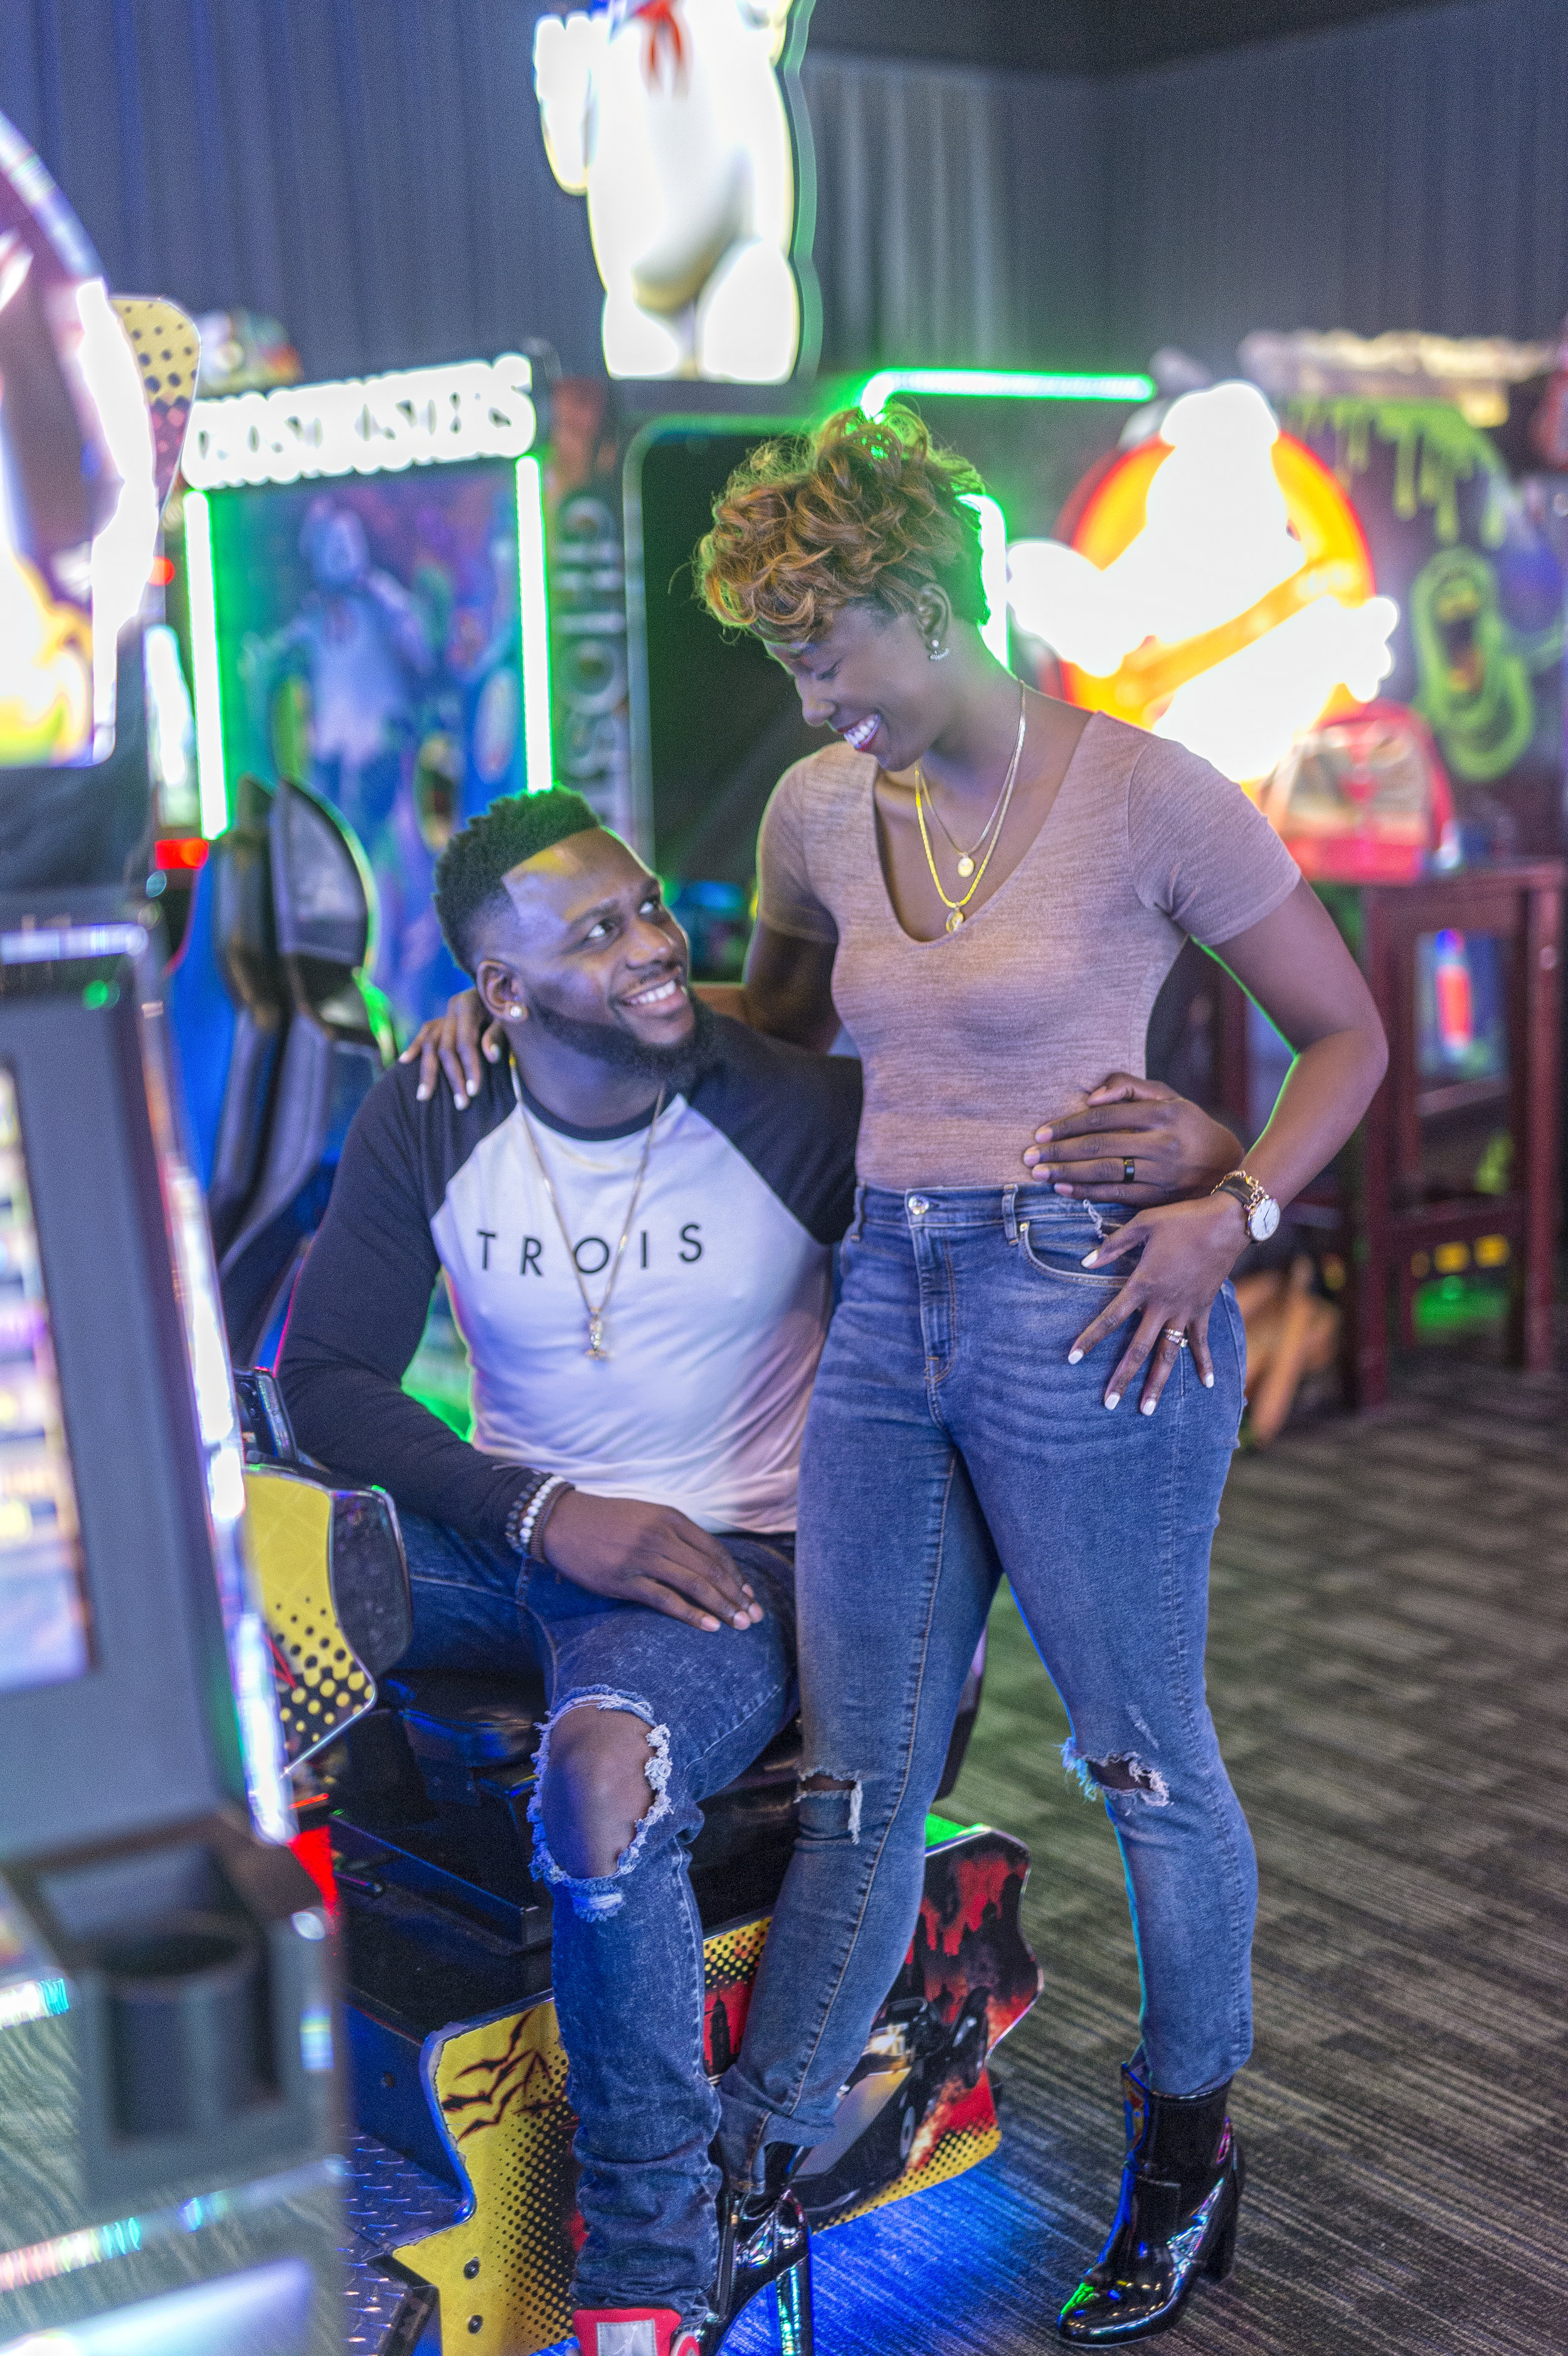 themBoldens_dave-and-busters-black-love-7.jpg